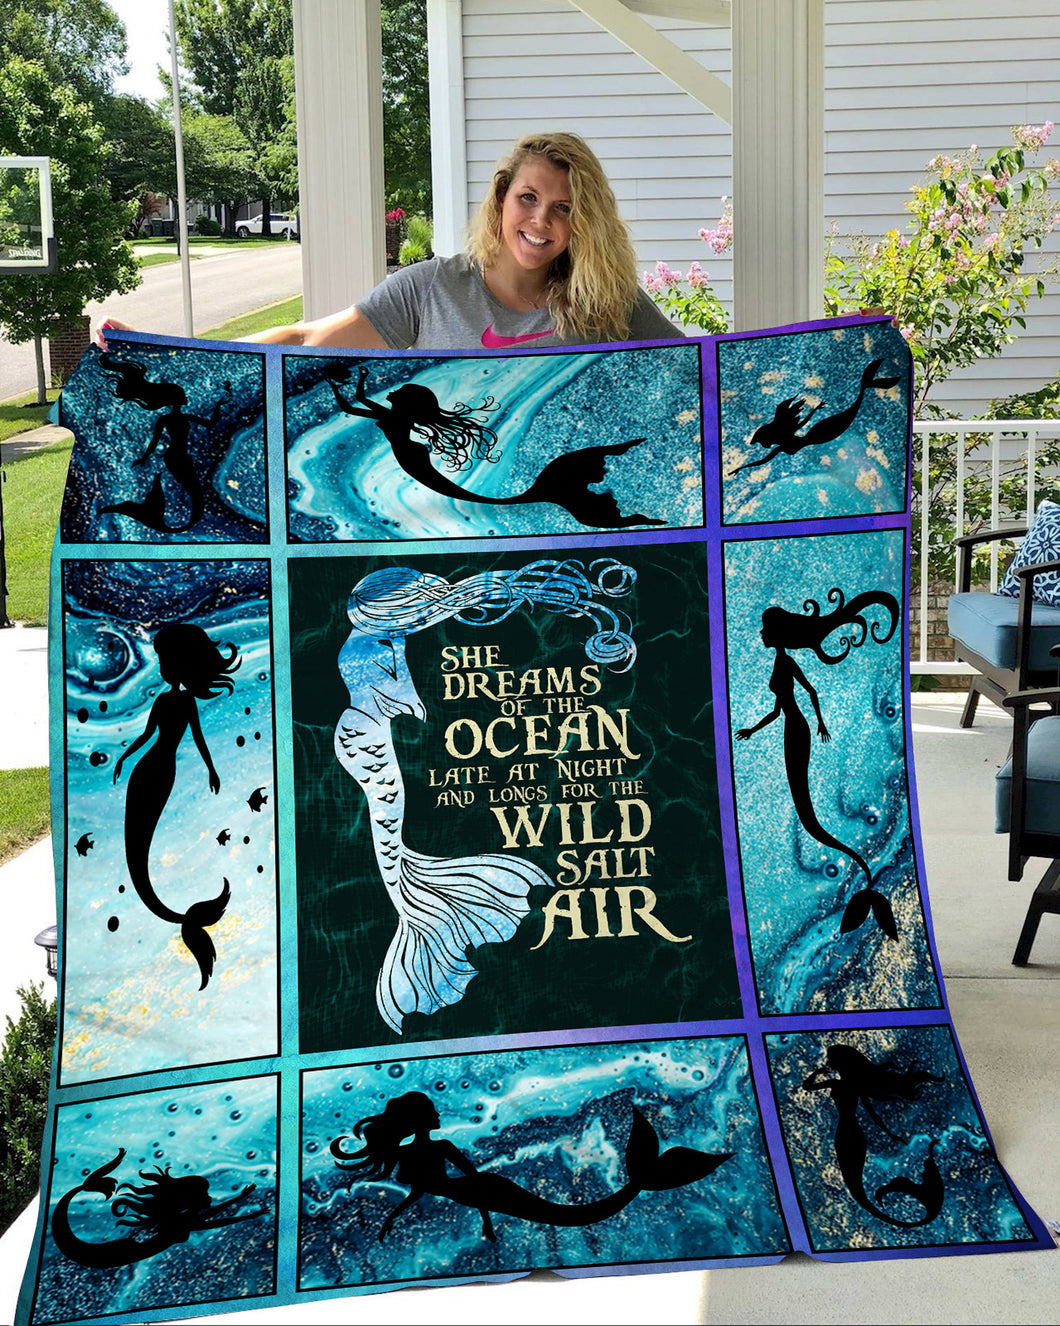 SOFT THROW MERMAID, AQUAMARINE FLEECE BLANKET - 3DQ107 WINTER BLANKET